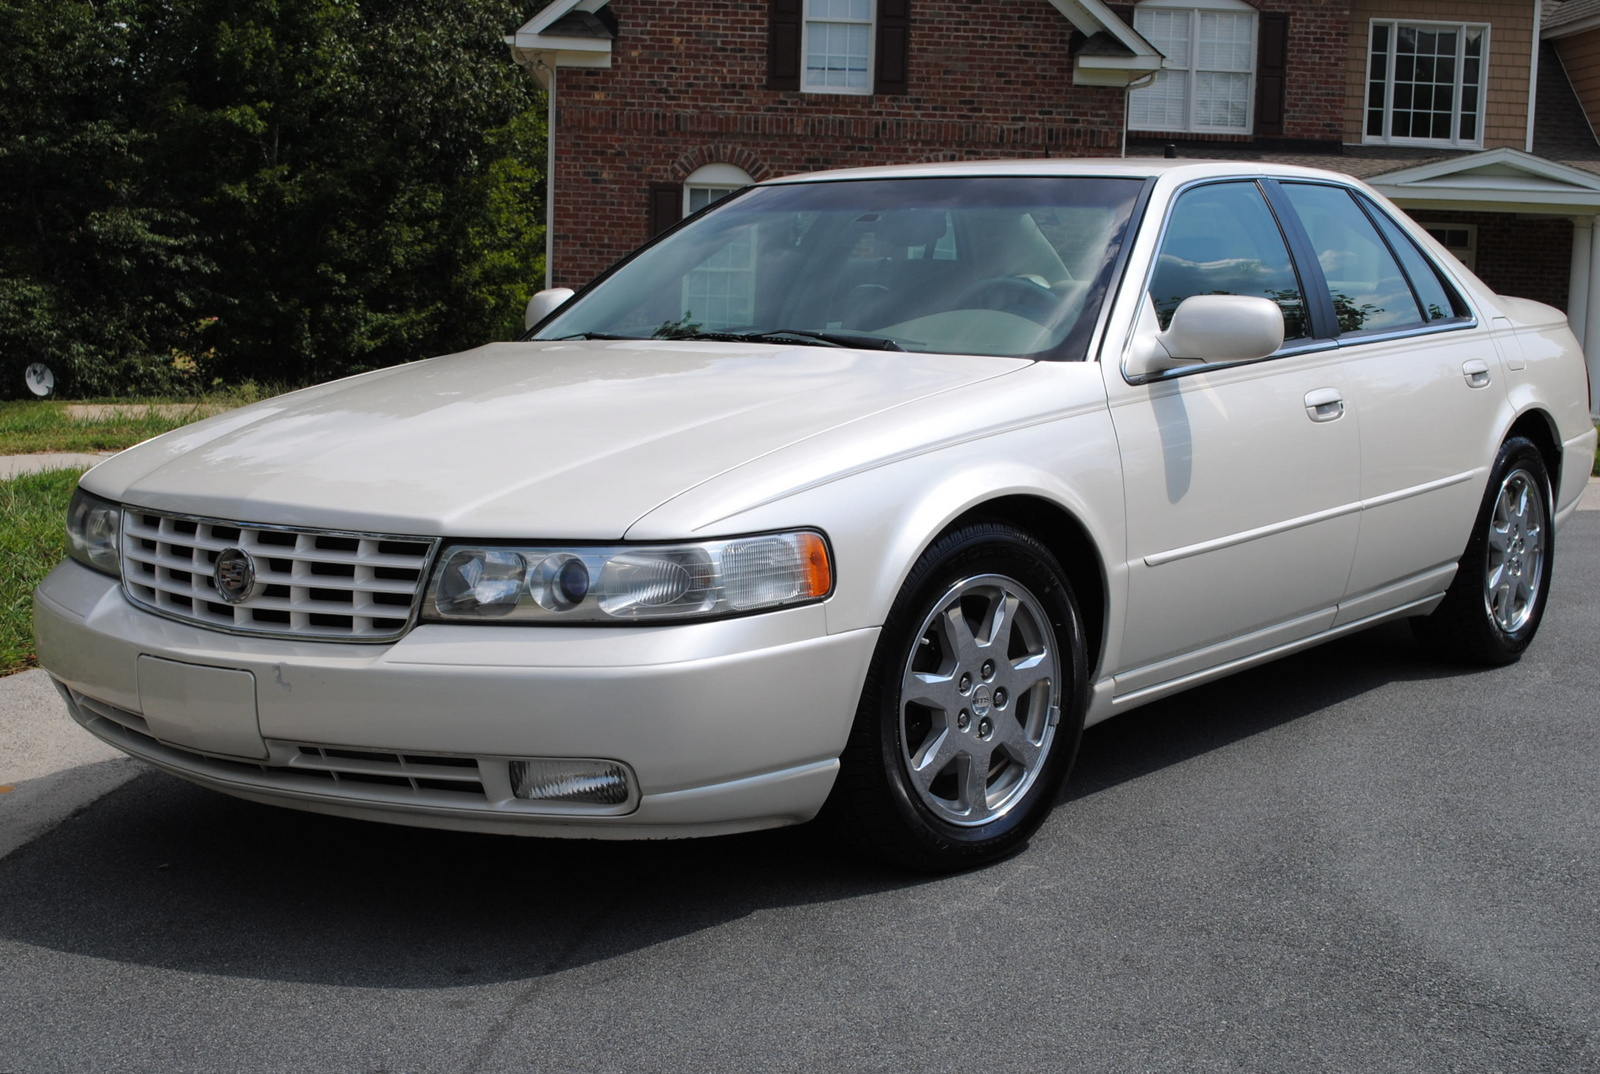 2002 Cadillac Seville - Information and photos - ZombieDrive